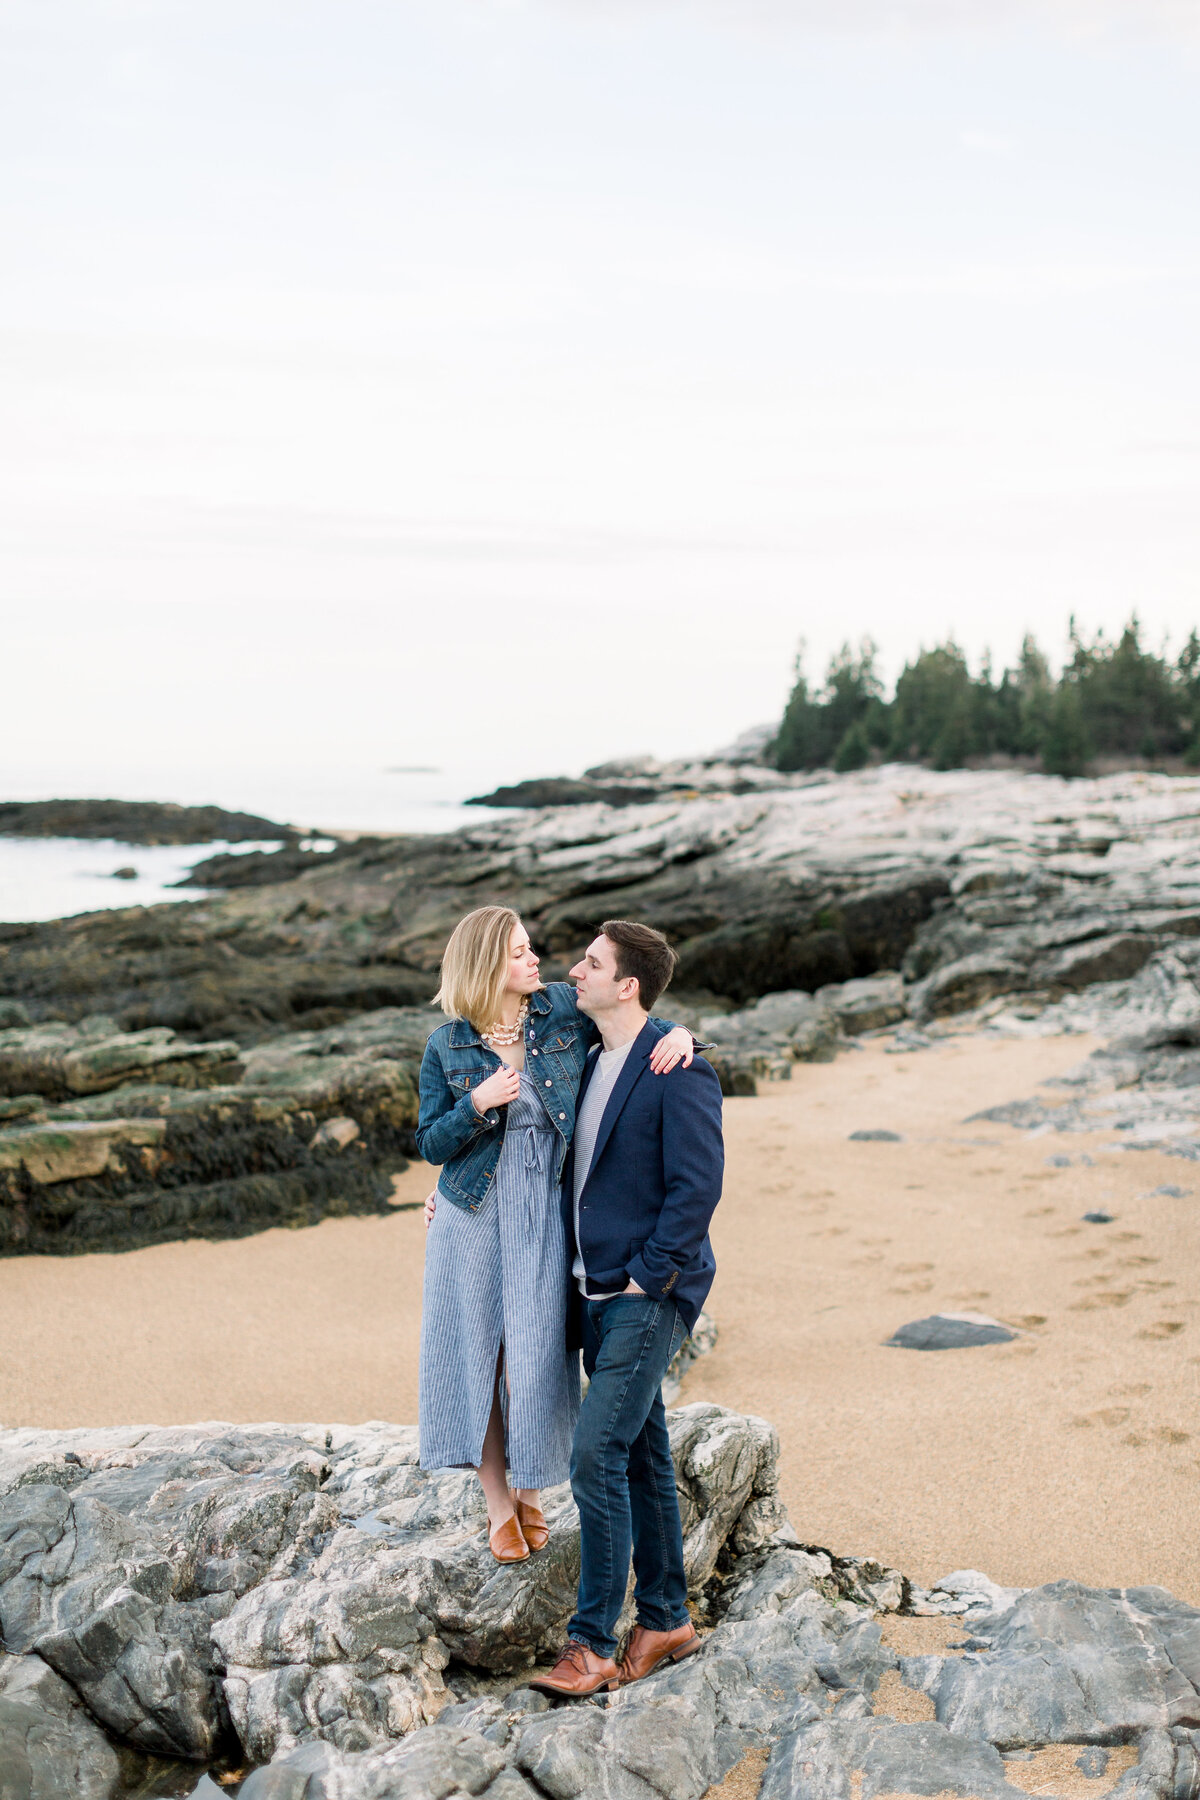 Rachel Buckley Weddings Photography Maine Wedding Lifestyle Studio Joyful Timeless Imagery Natural Portraits Destination11